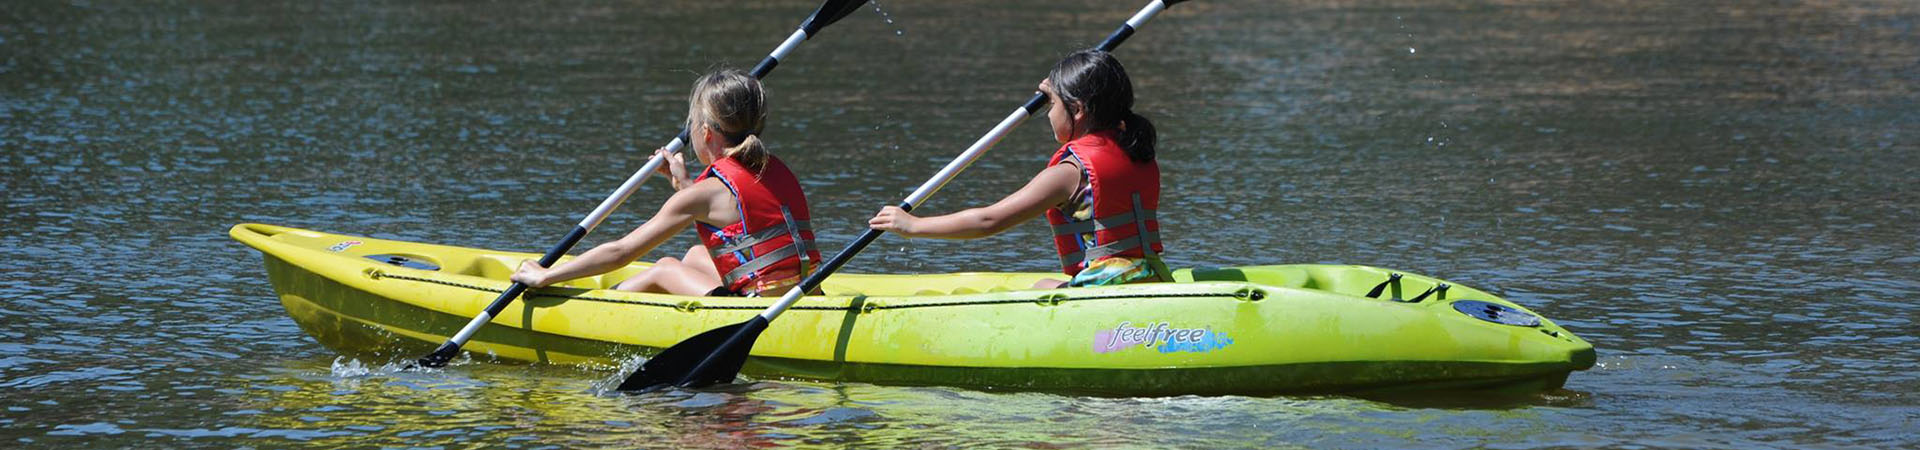 Kayaking - Wes Point Lake Slideshow Photo